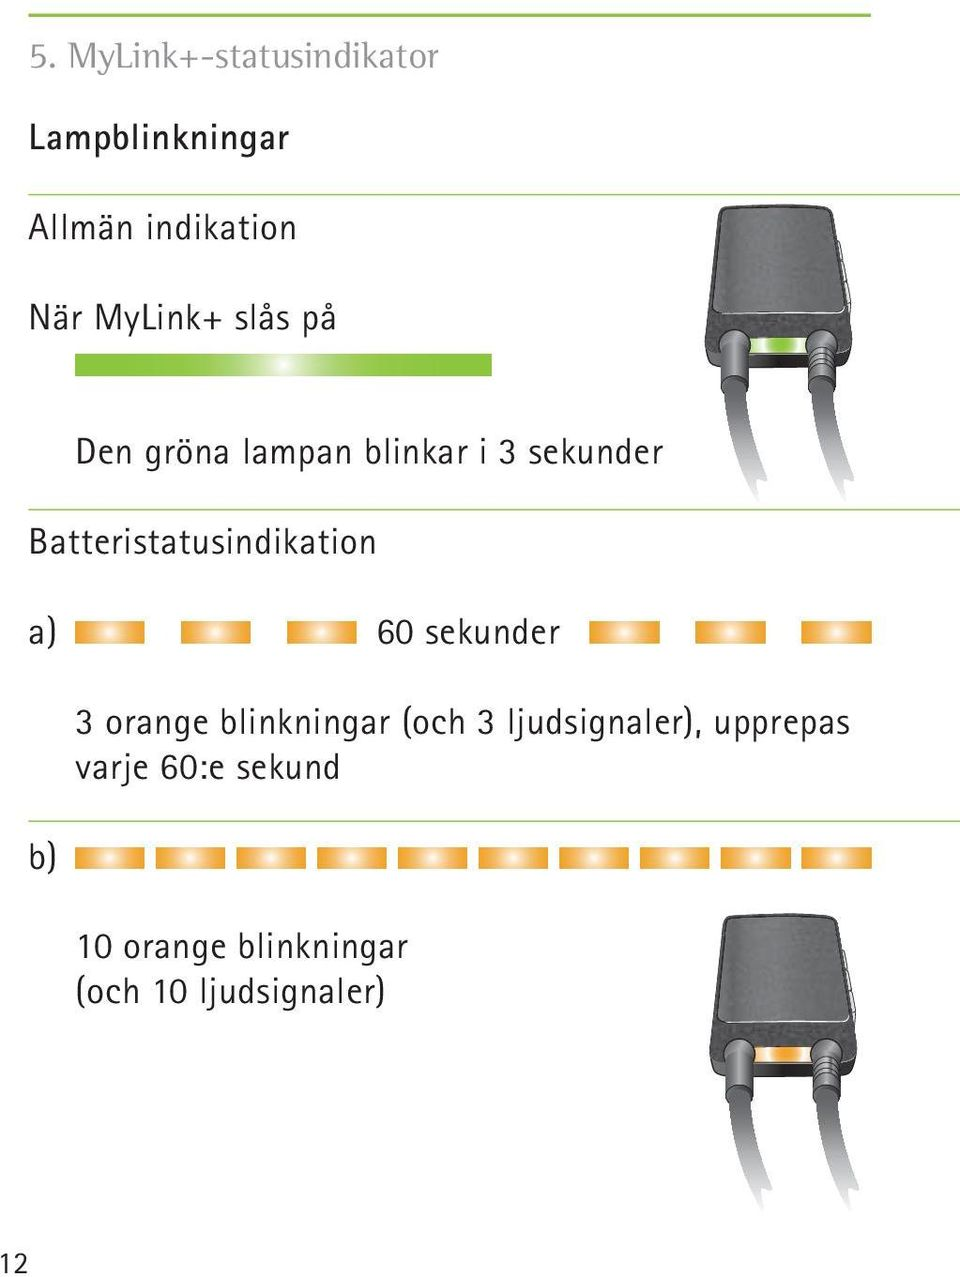 Batteristatusindikation a) 60 sekunder b) 3 orange blinkningar (och 3